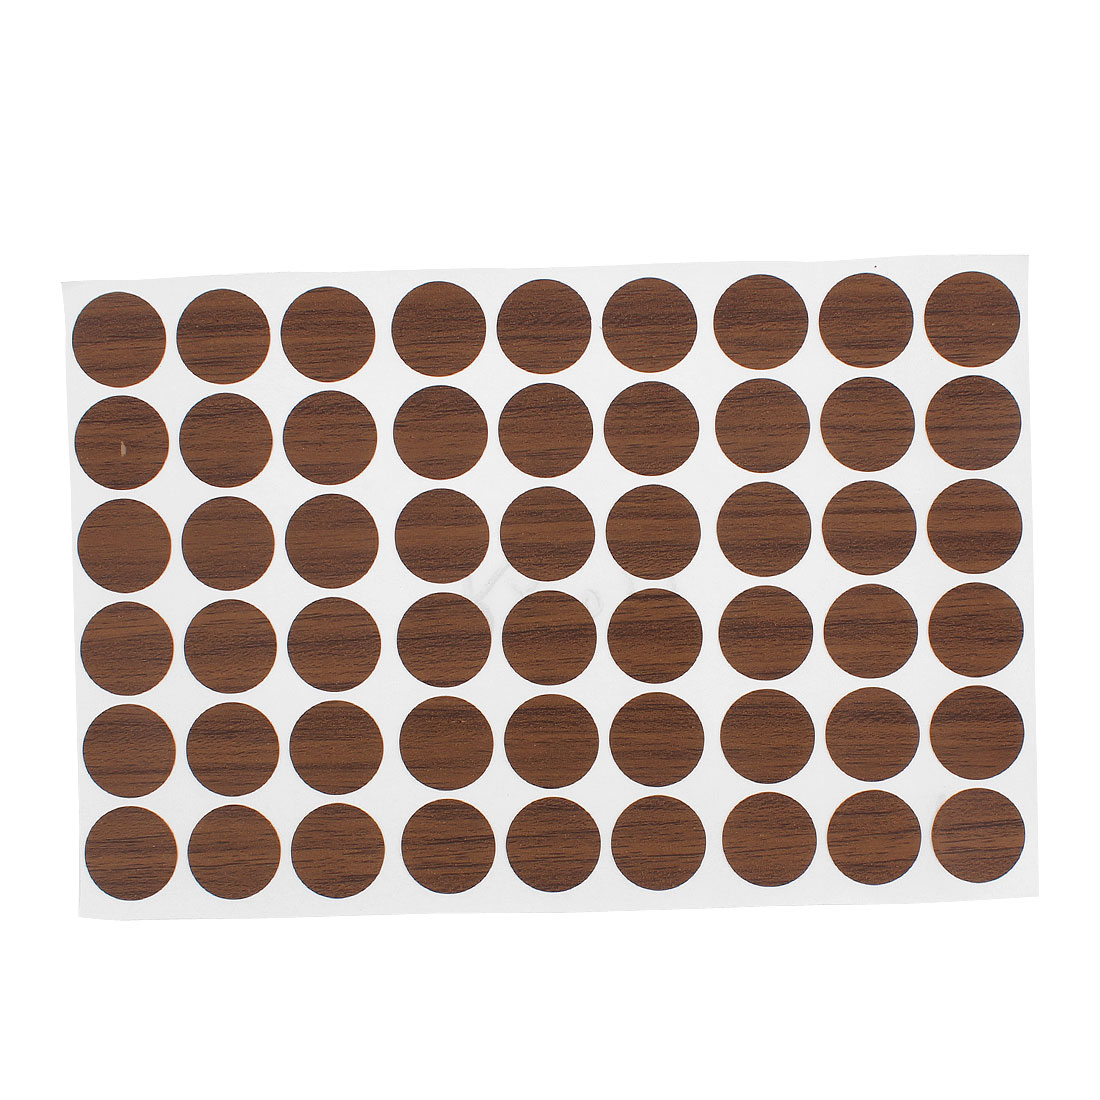 Plastic Self-adhesive Screw Covers Caps Stickers Brown 54 in 1 for 21mm Hole Dia